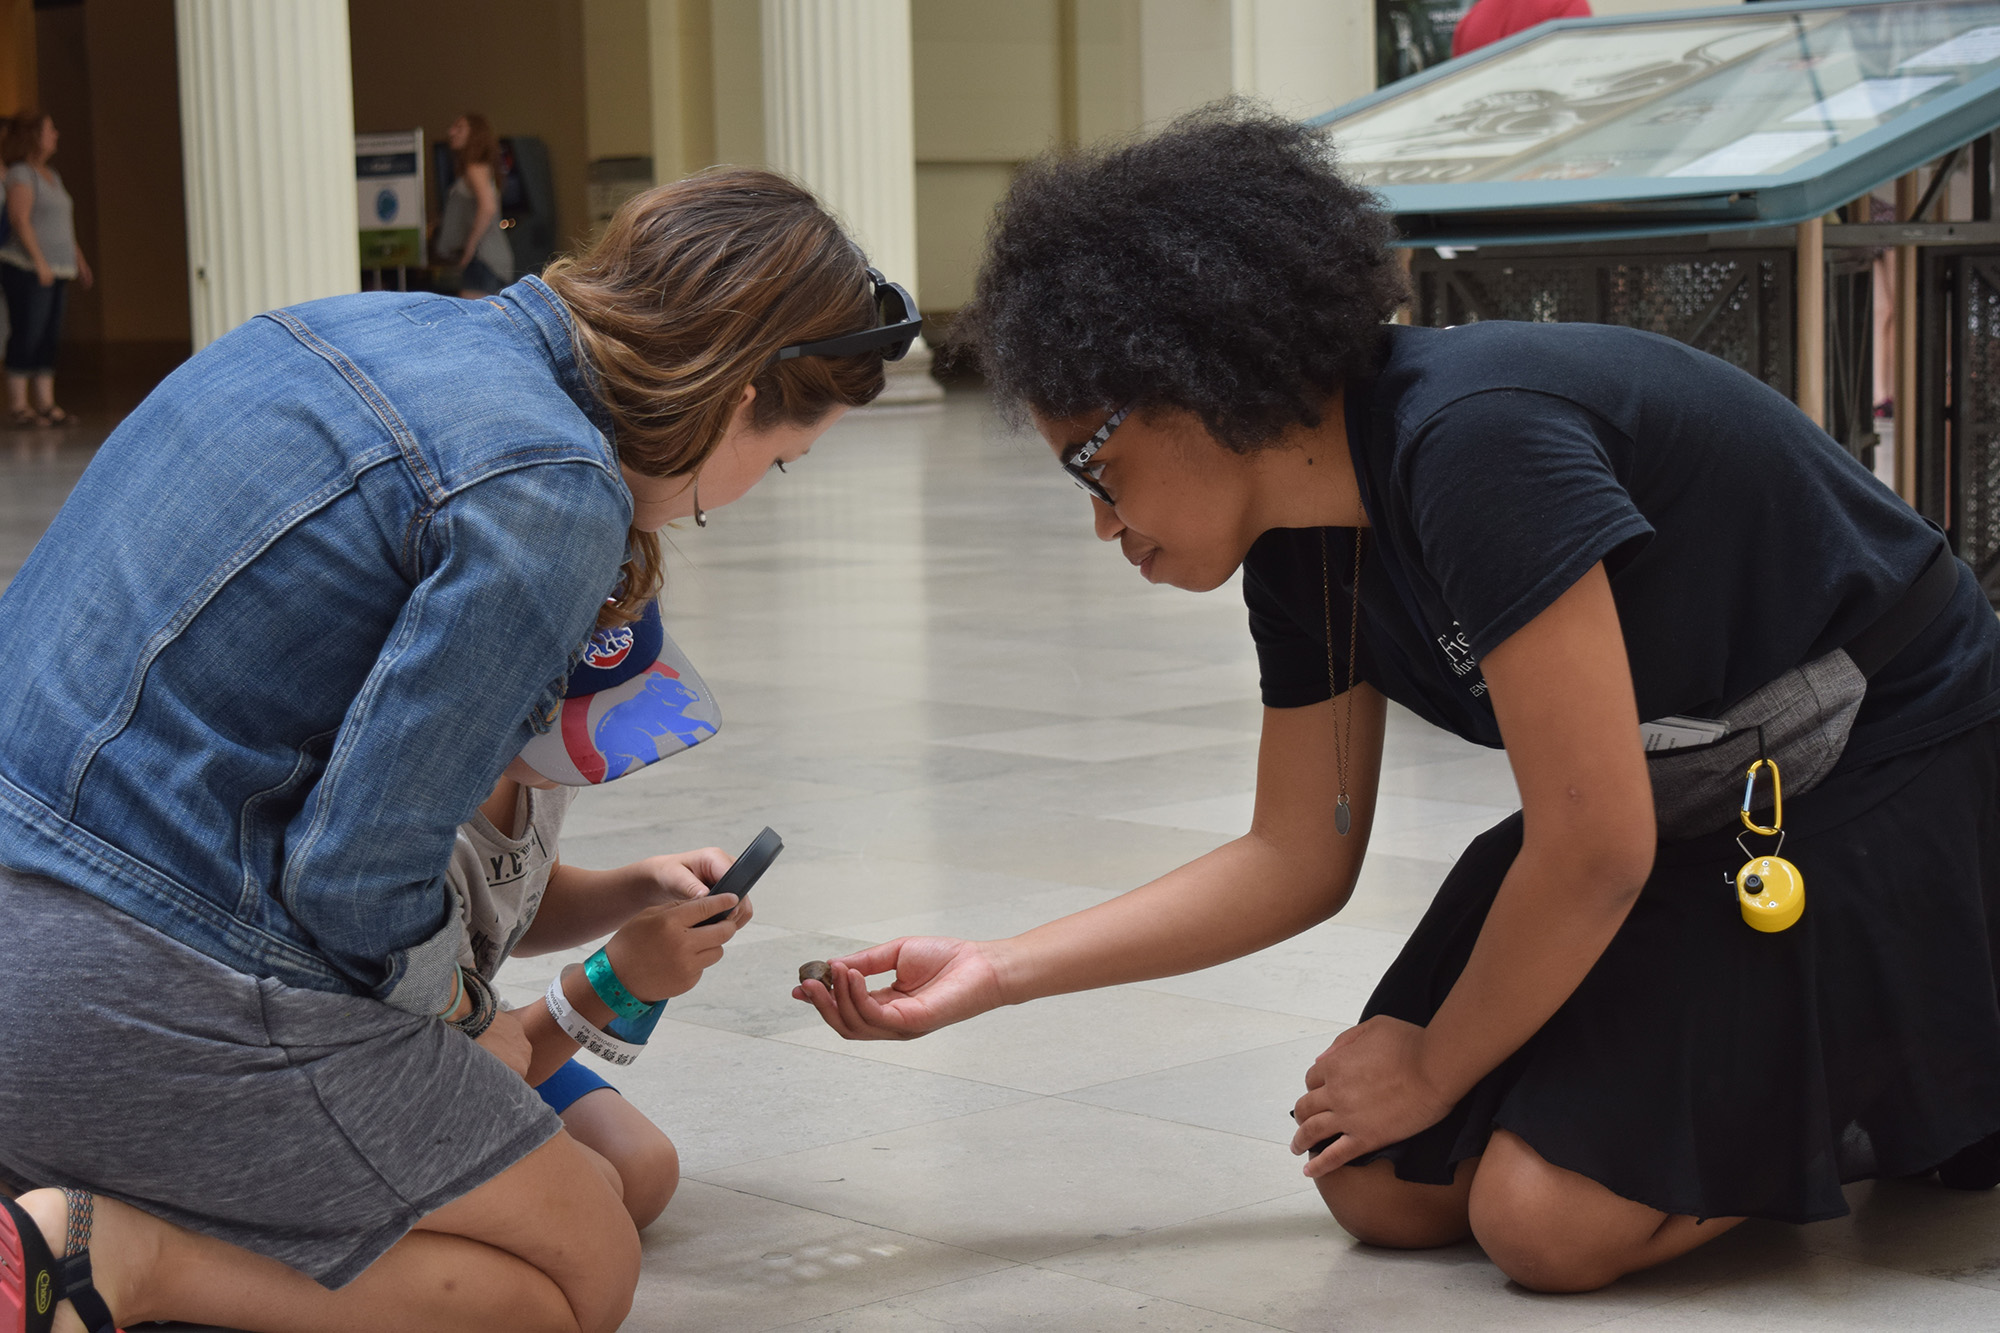 Two teens kneel on a tile floor next to a child. They are all looking at a small object one of the teens is holding out in her hand.